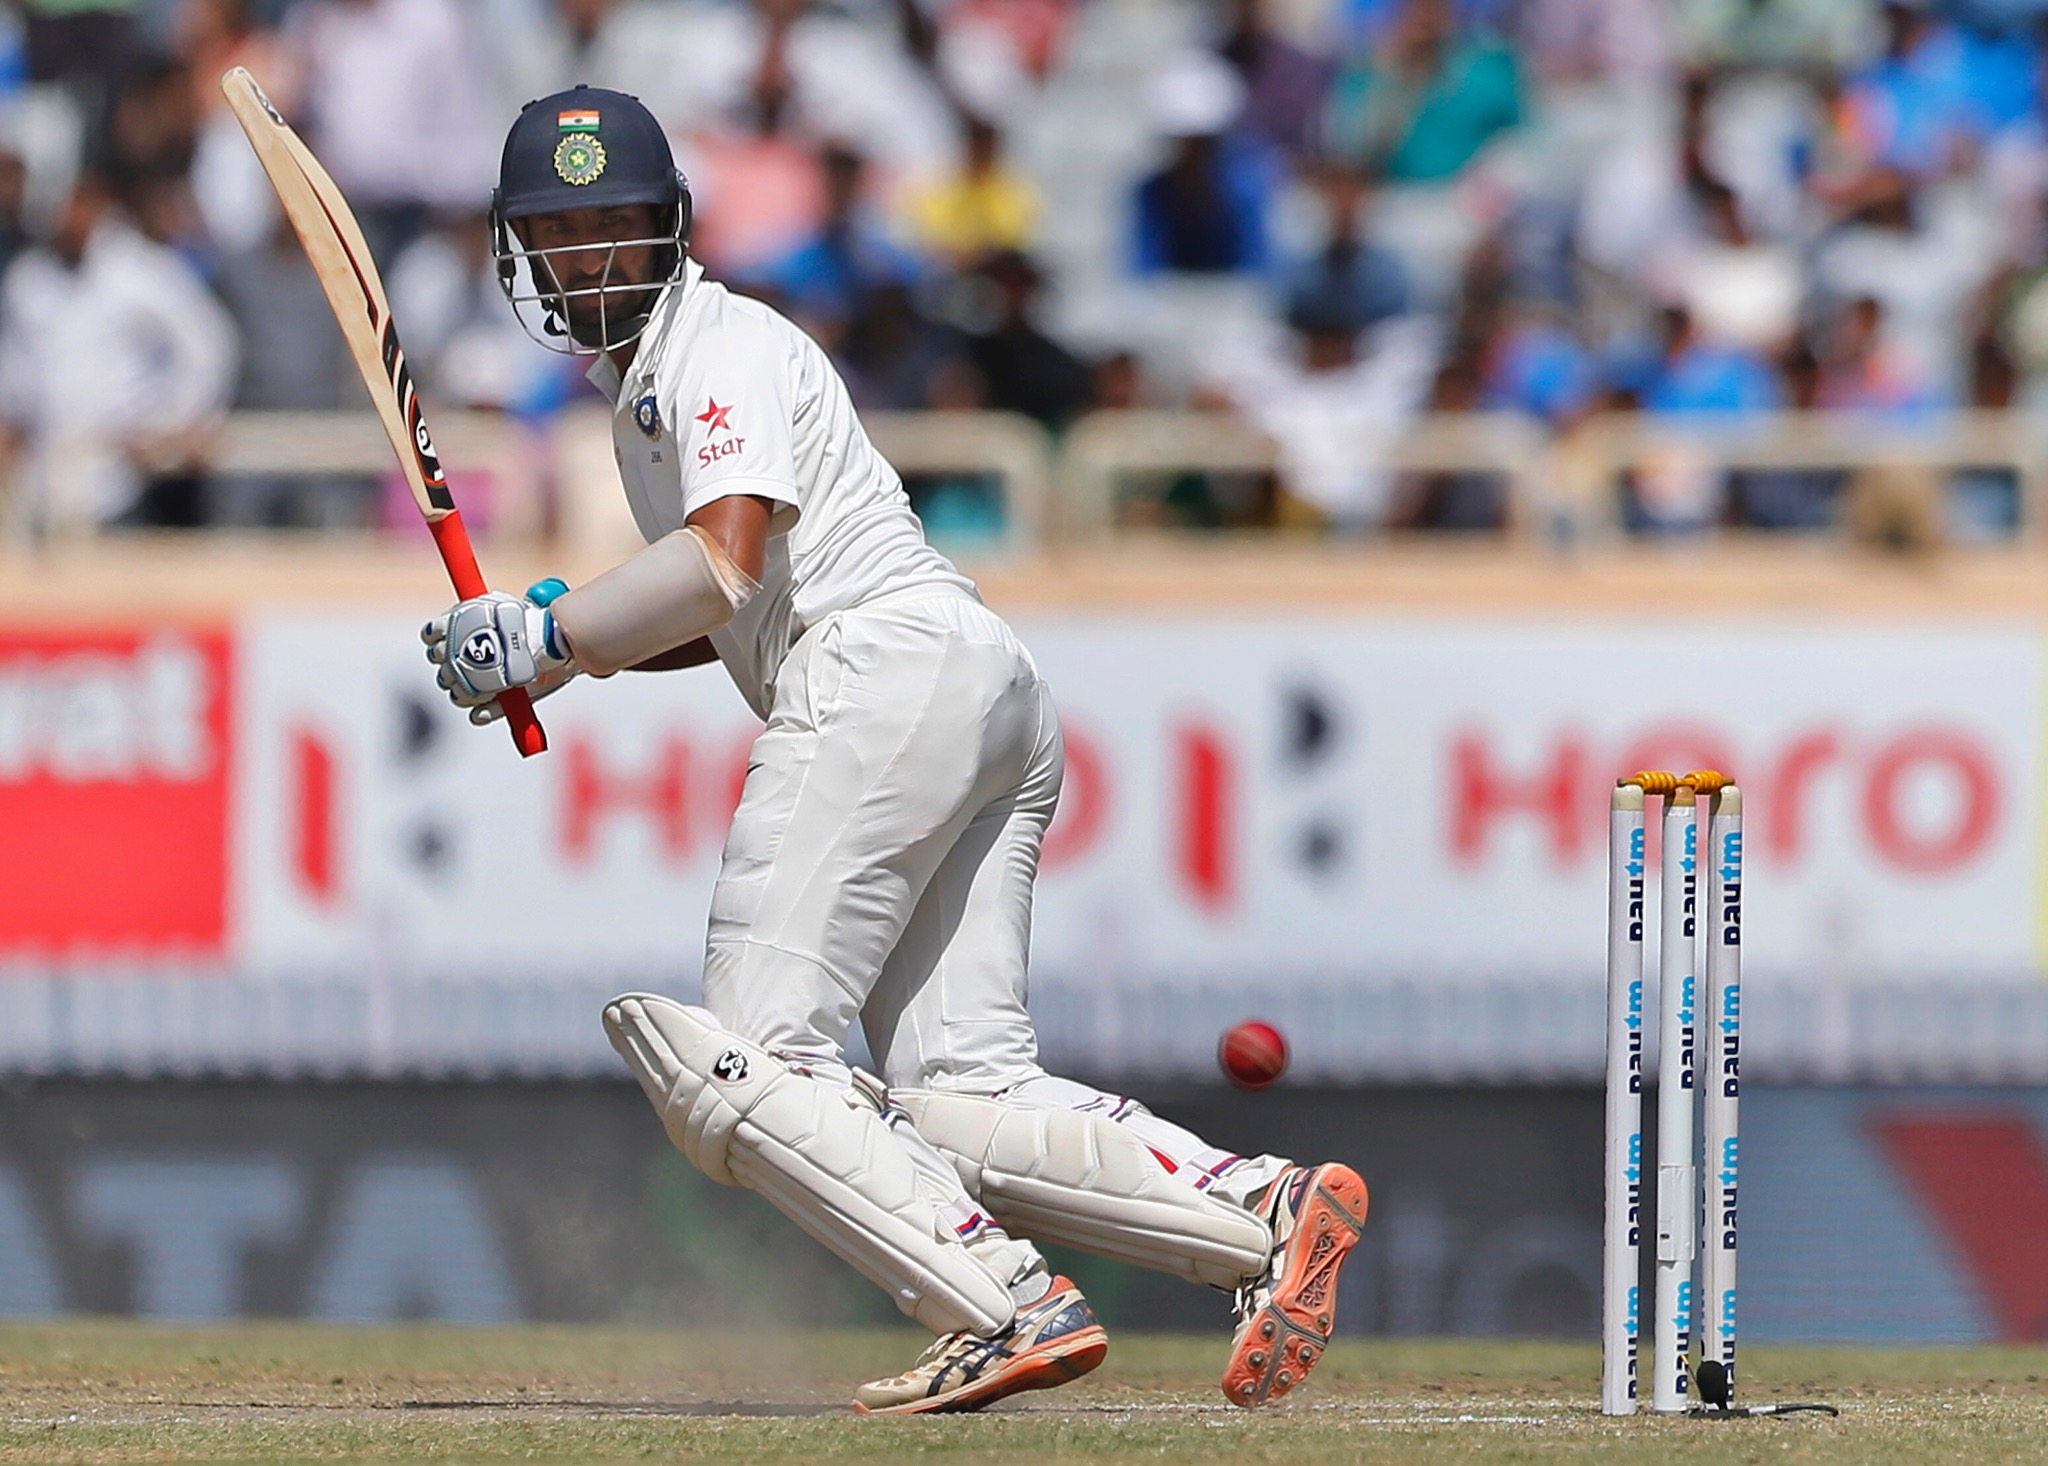 India's Cheteshwar Pujara plays a shot during the third day of the third test cricket match against Australia in Ranchi, India, Saturday, March 18. (AP Photo/Aijaz Rahi)